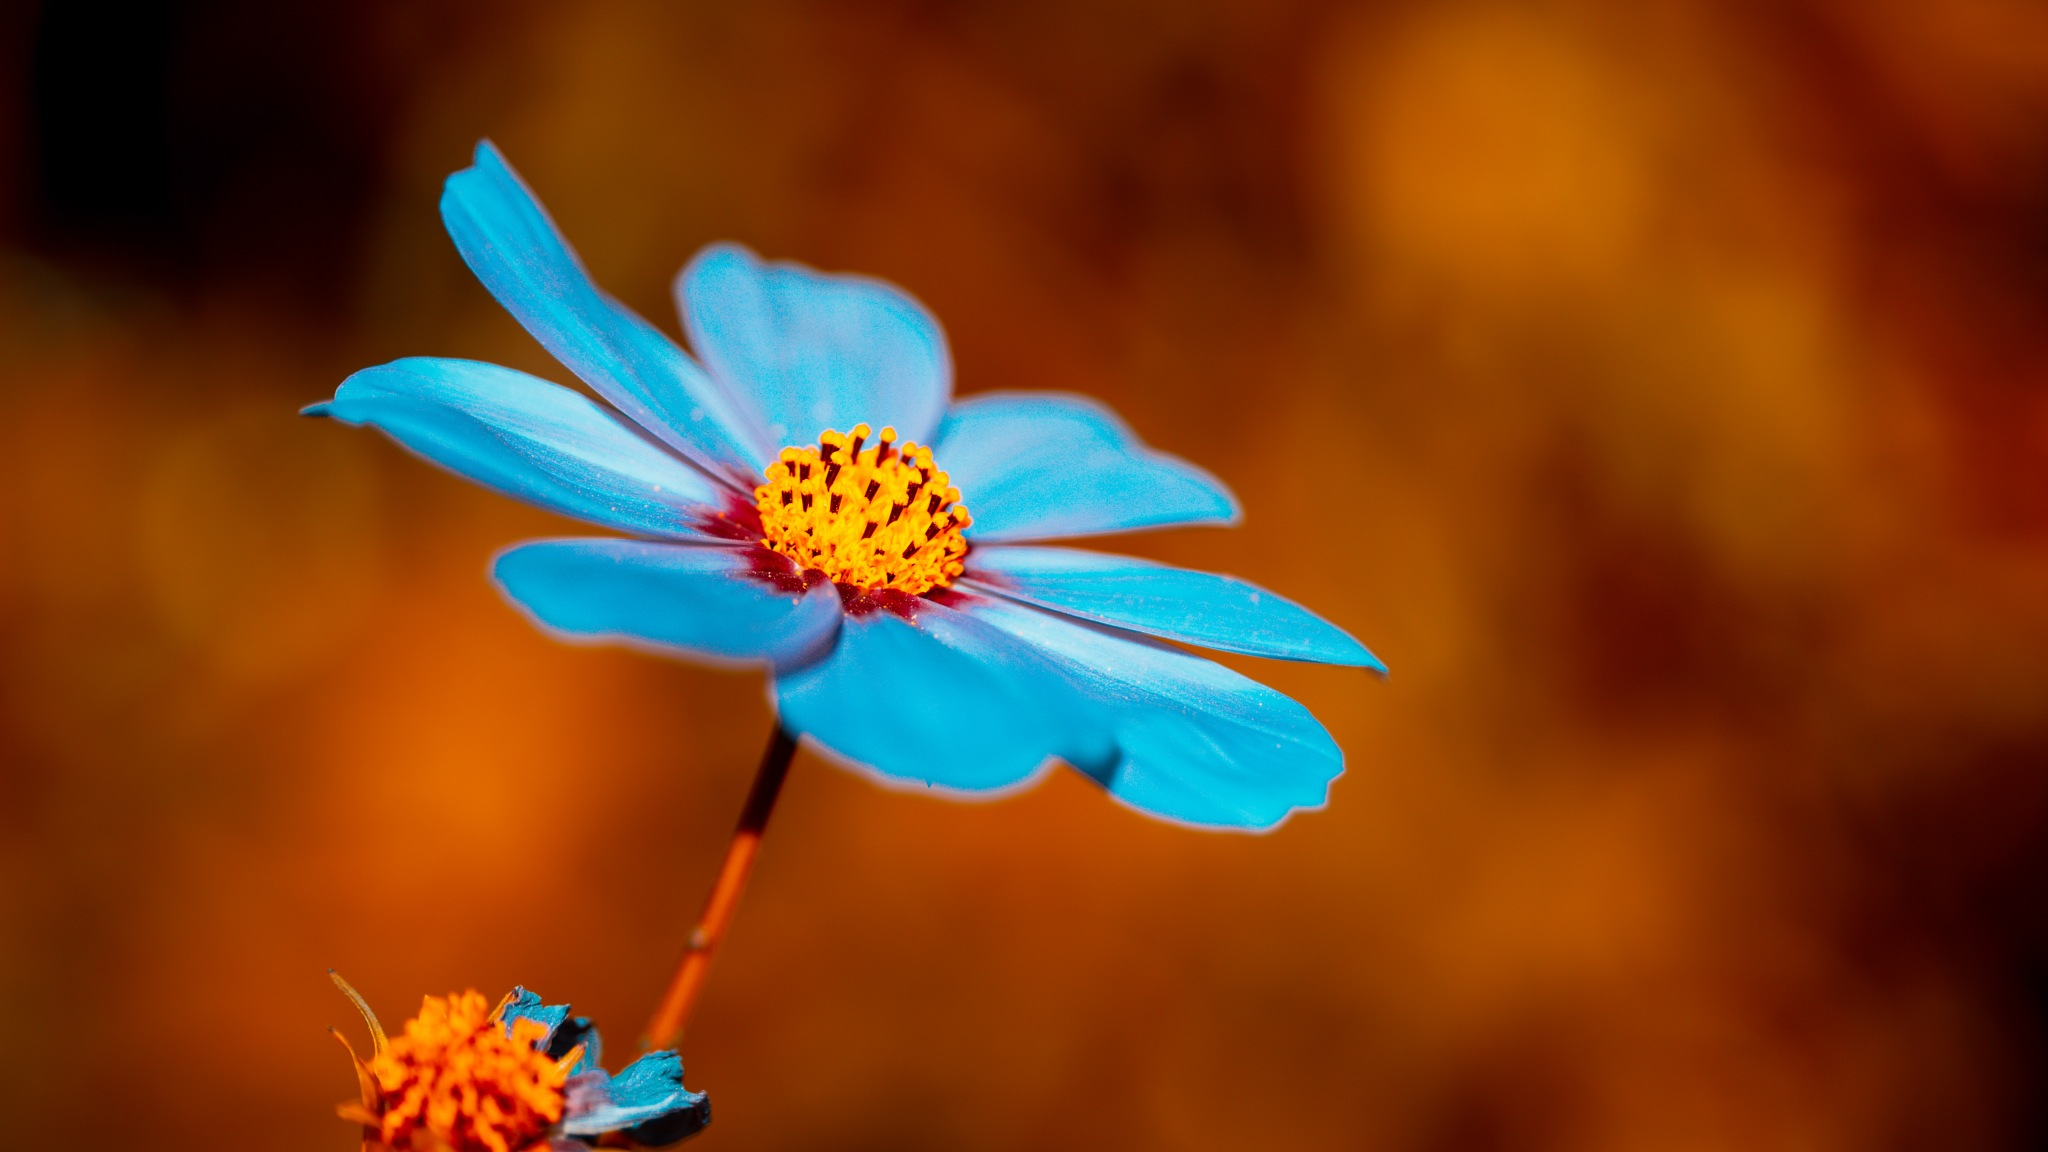 Blue and Orange by Andreas schorer